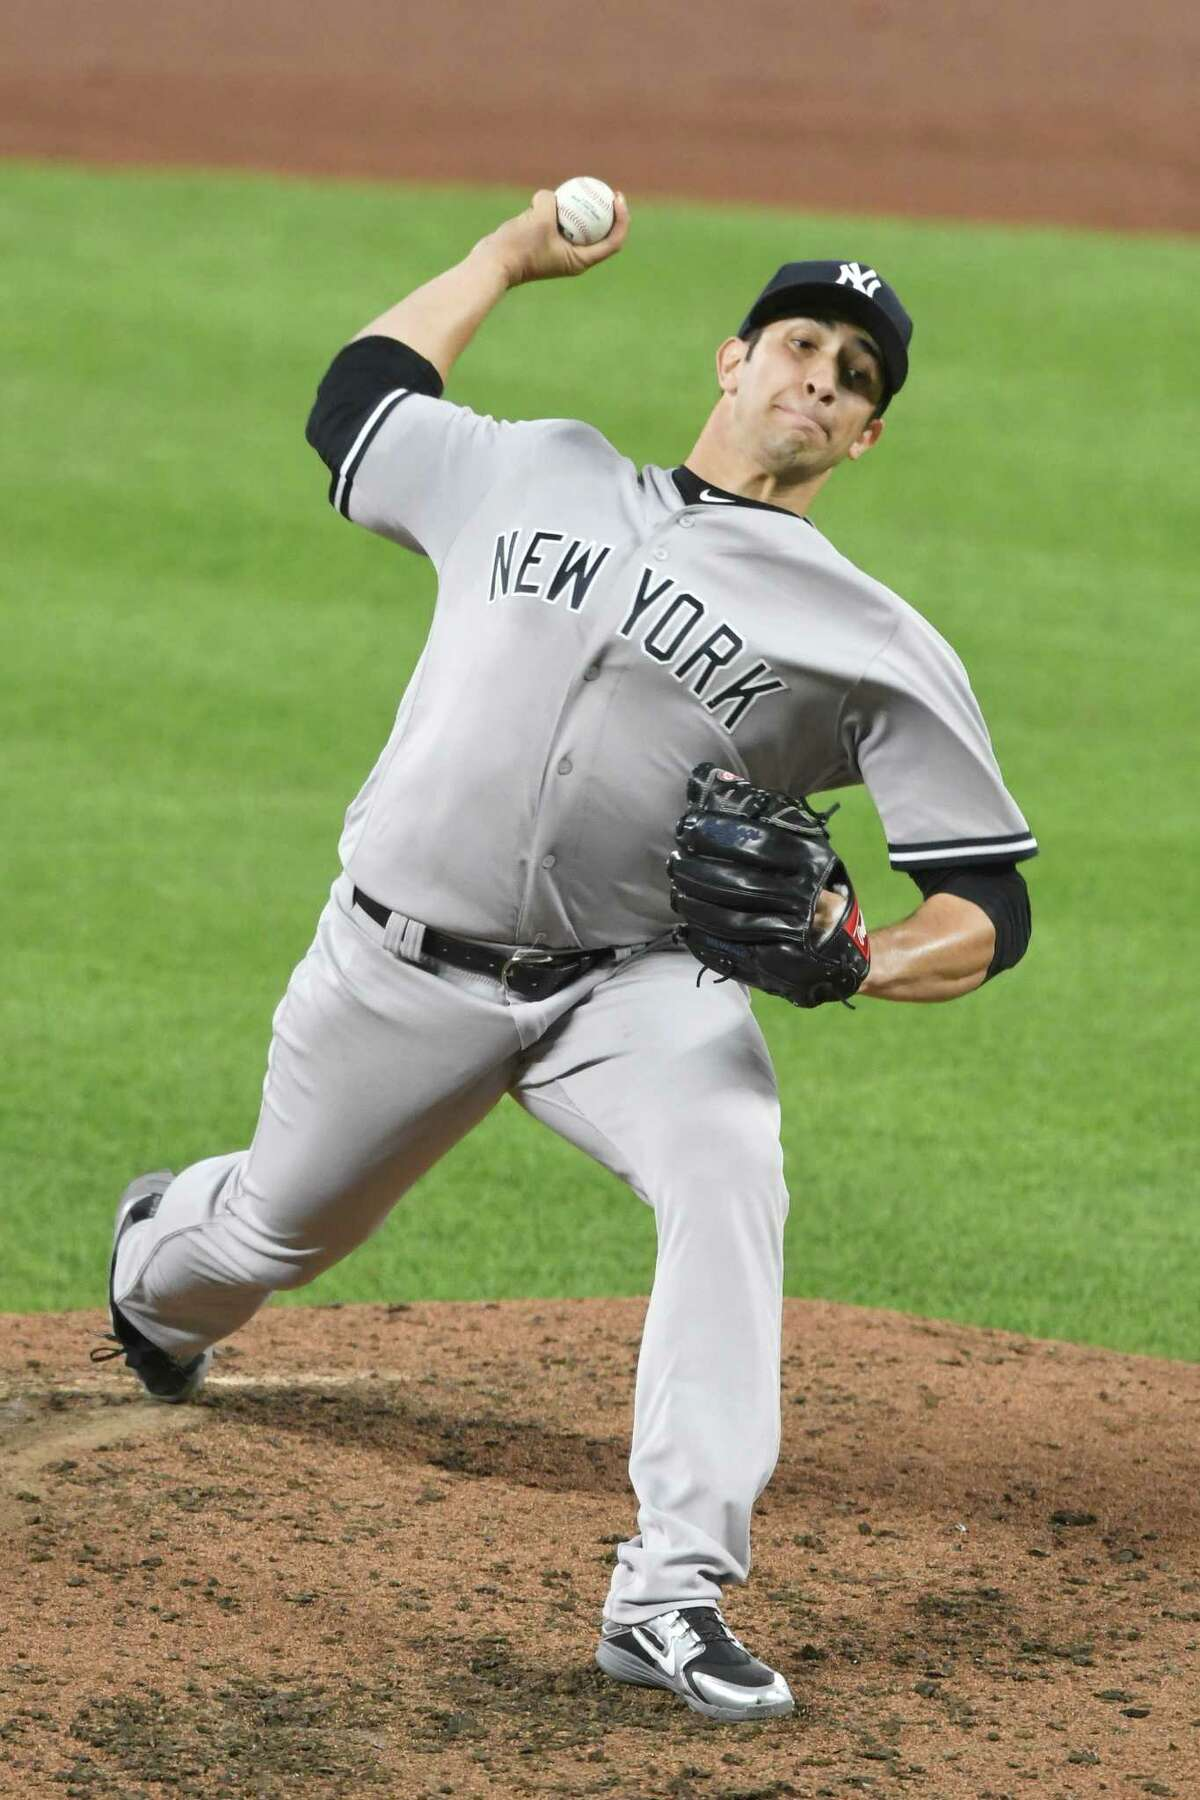 BALTIMORE, MD - JULY 09: Luis Cessa #85 of the New York Yankees pitches in the forth inning during a game two of a doubleheader baseball game against the Baltimore Orioles at Oriole Park at Camden Yards on July 9, 2018 in Baltimore, Maryland. (Photo by Mitchell Layton/Getty Images)